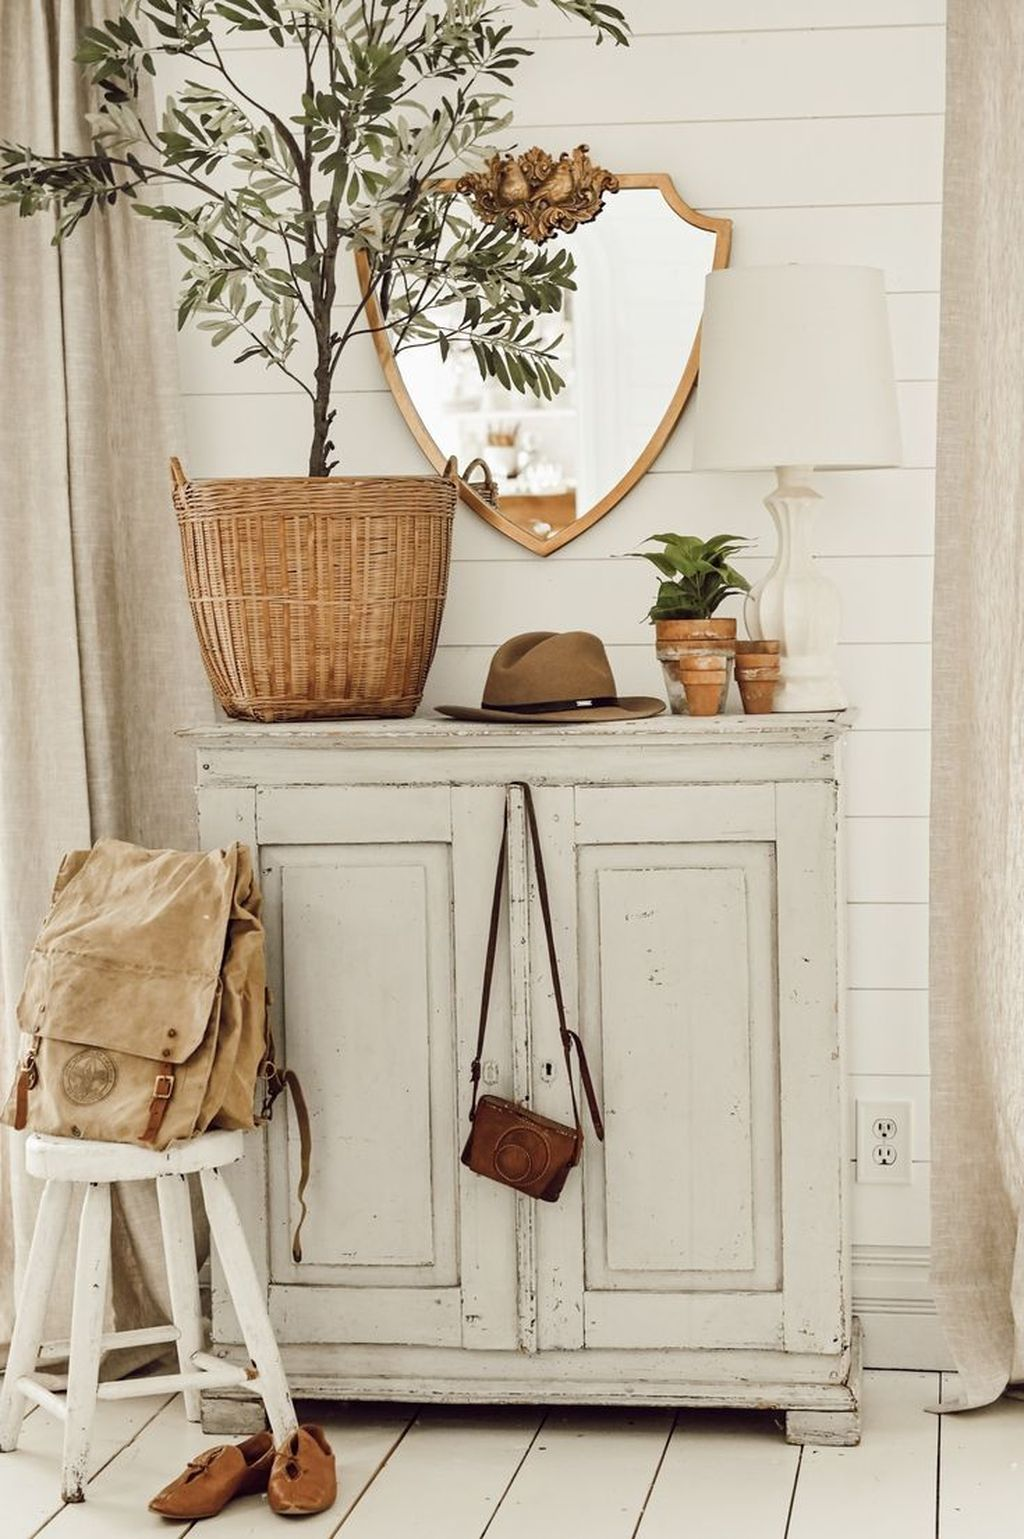 Awesome Spring Interior Decor Ideas That You Should Copy 21